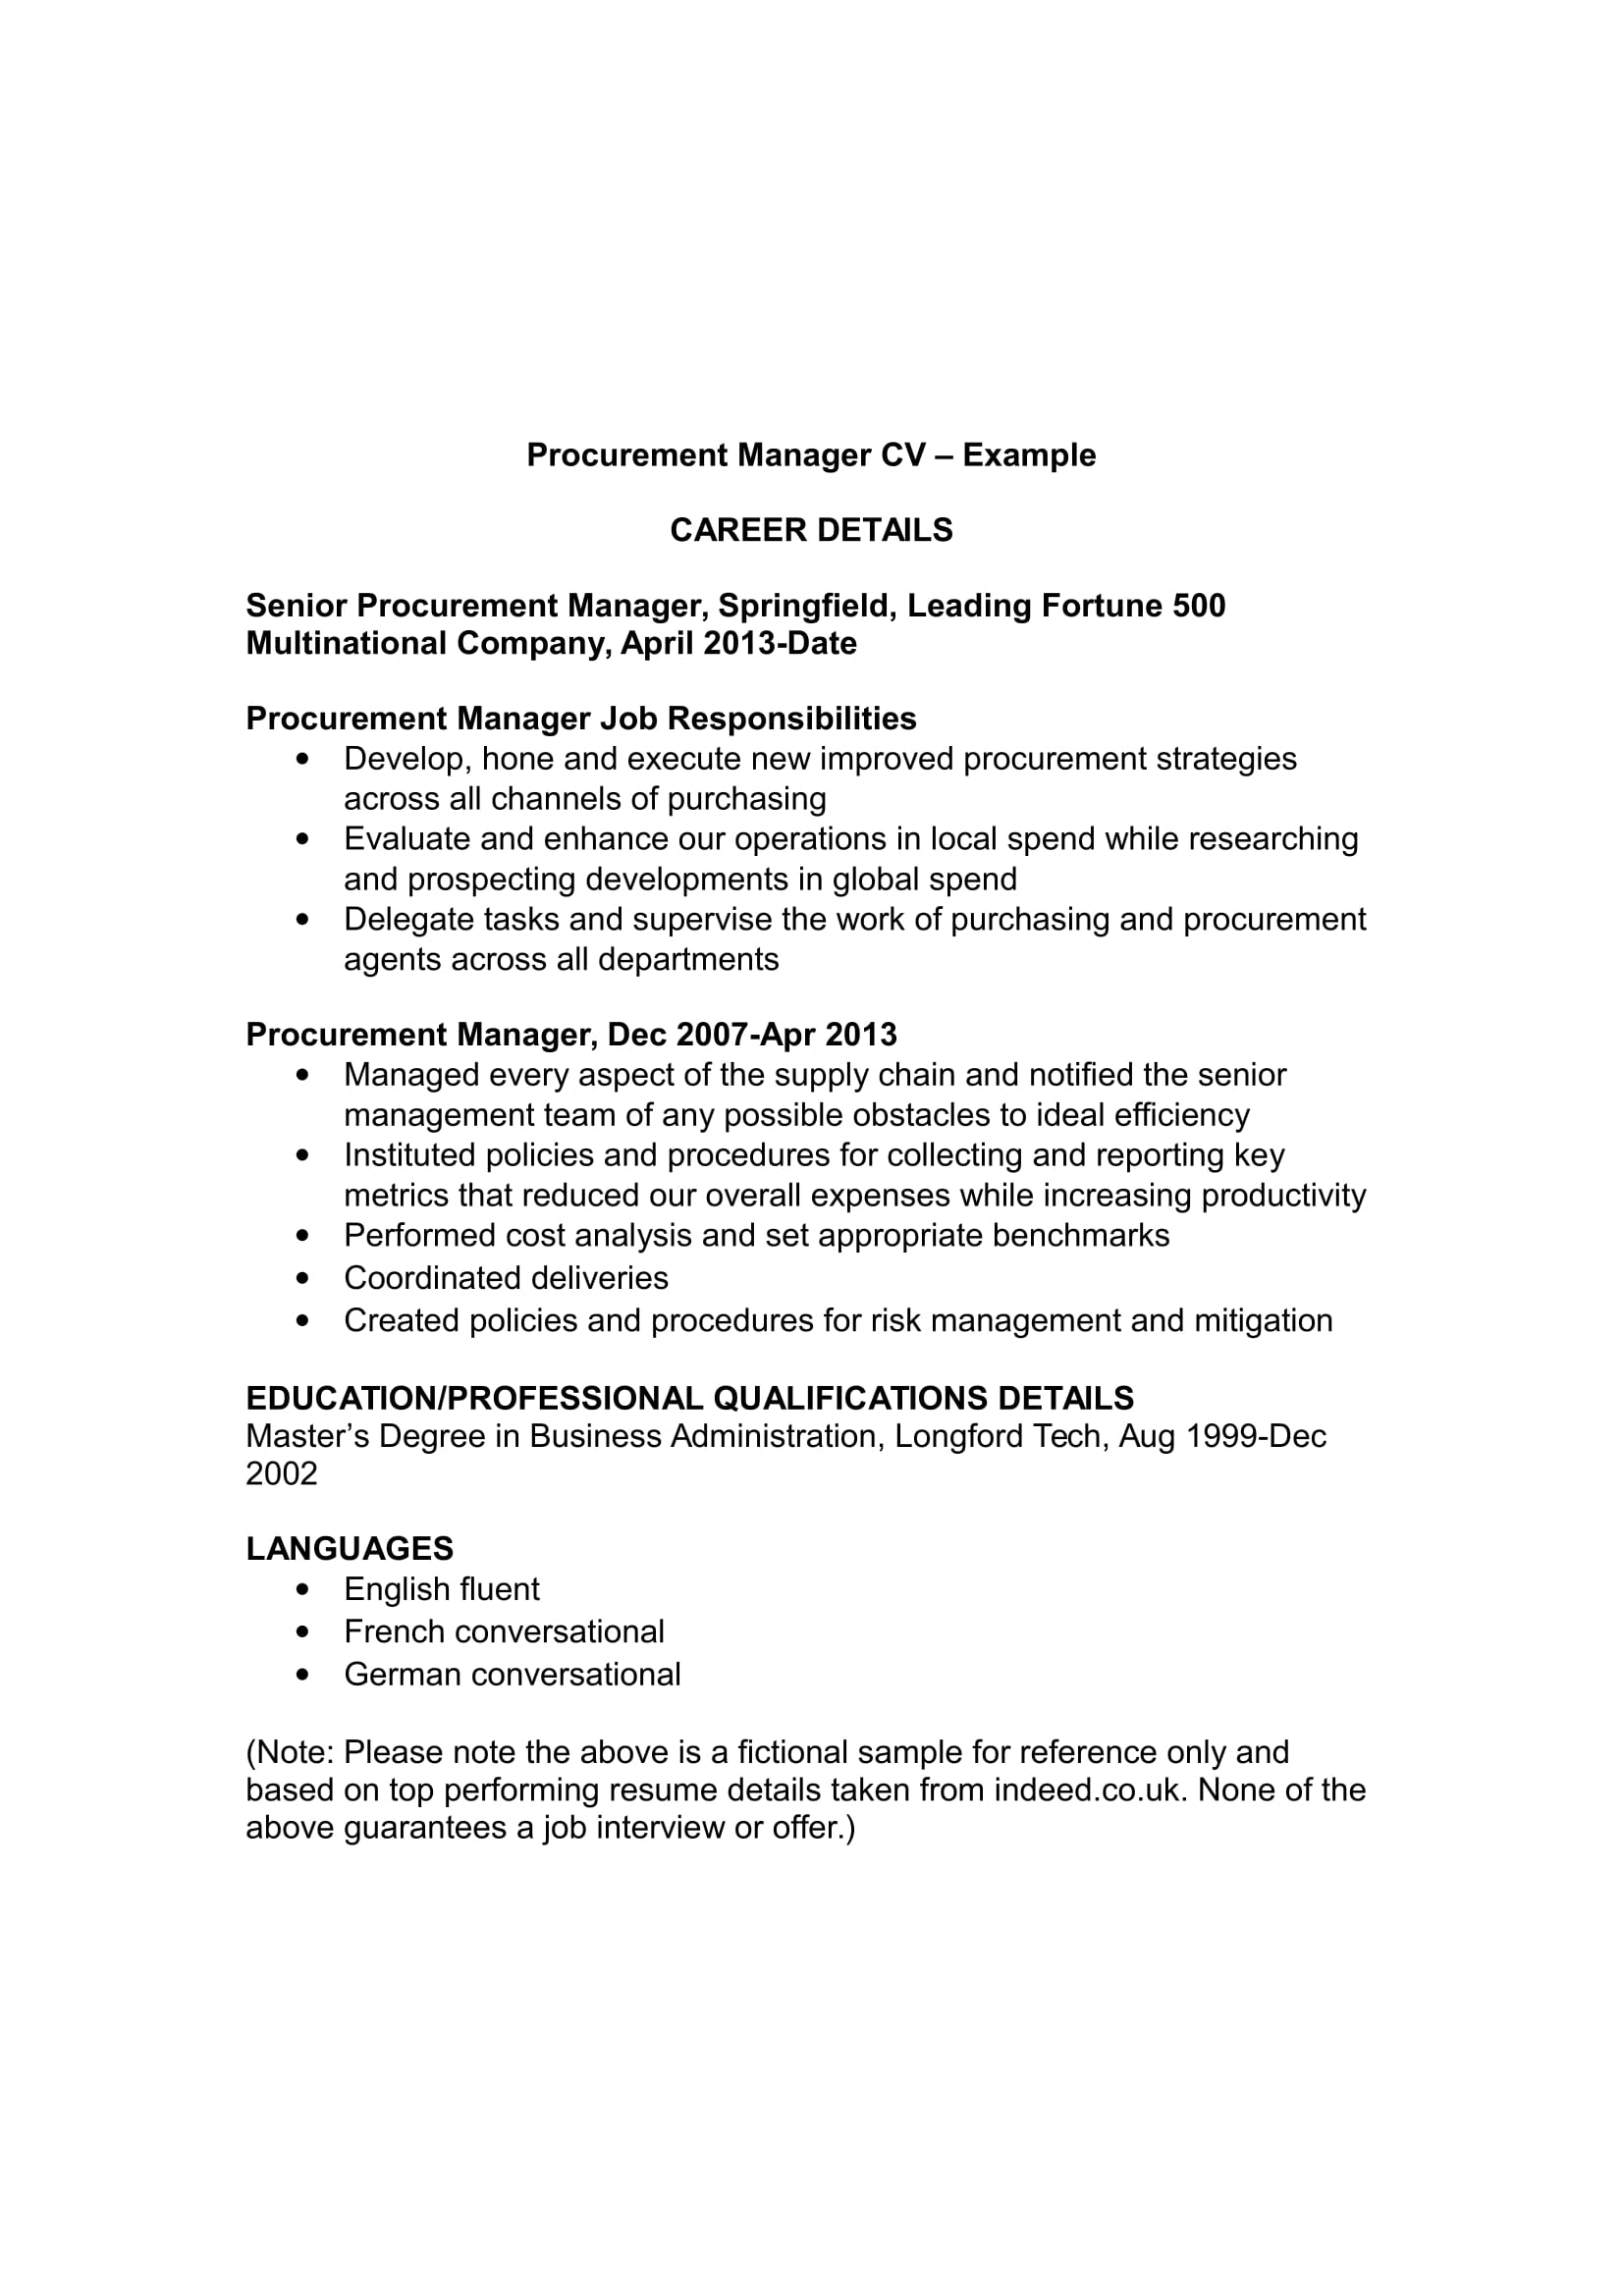 purchase cv template and fees resume format for procurement manager example digital Resume Resume Format For Procurement Manager